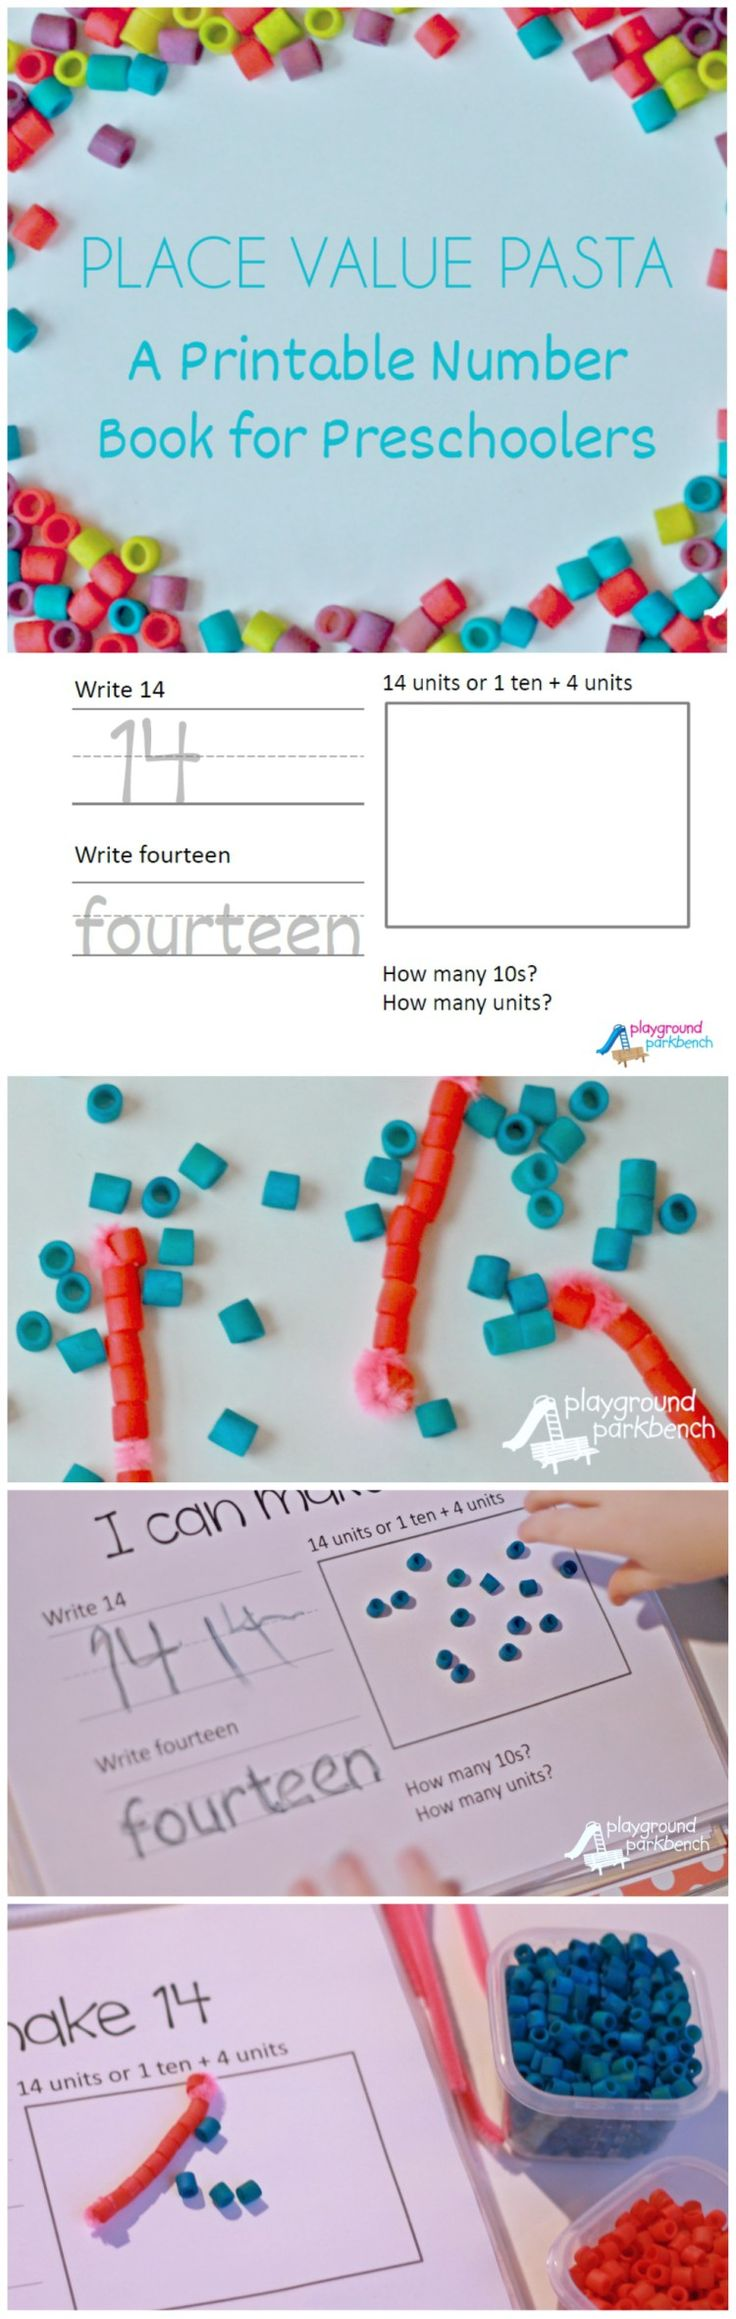 Teaching Place Value - Free Printable Number Book to Teach Your Preschooler Place Value with Pasta